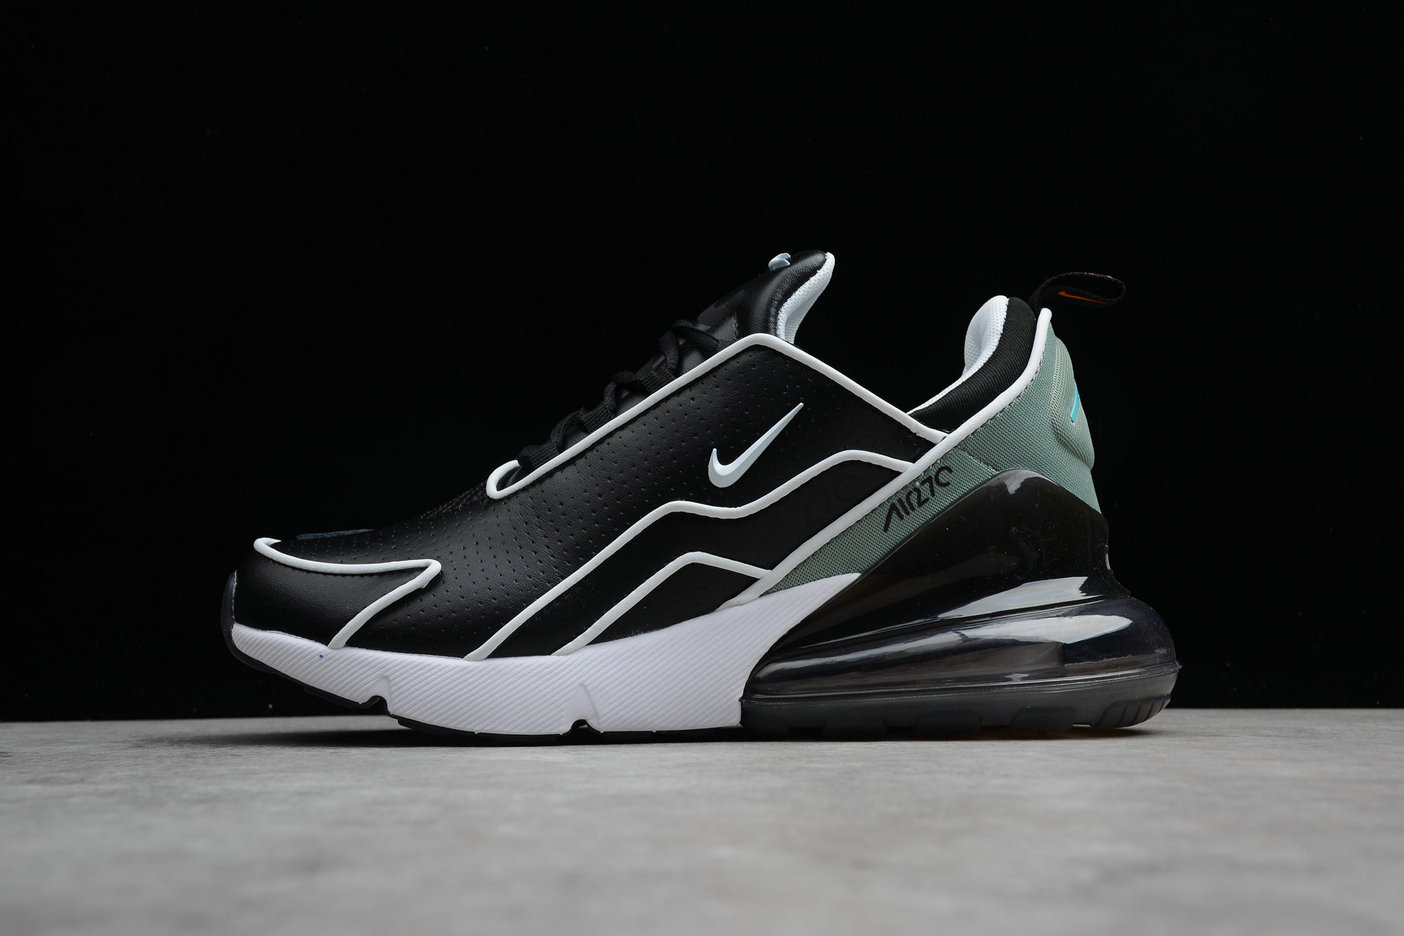 Cheap Nike Air Max 270 Flyknit AH8060-001 Black Charcoal Noir Charbon